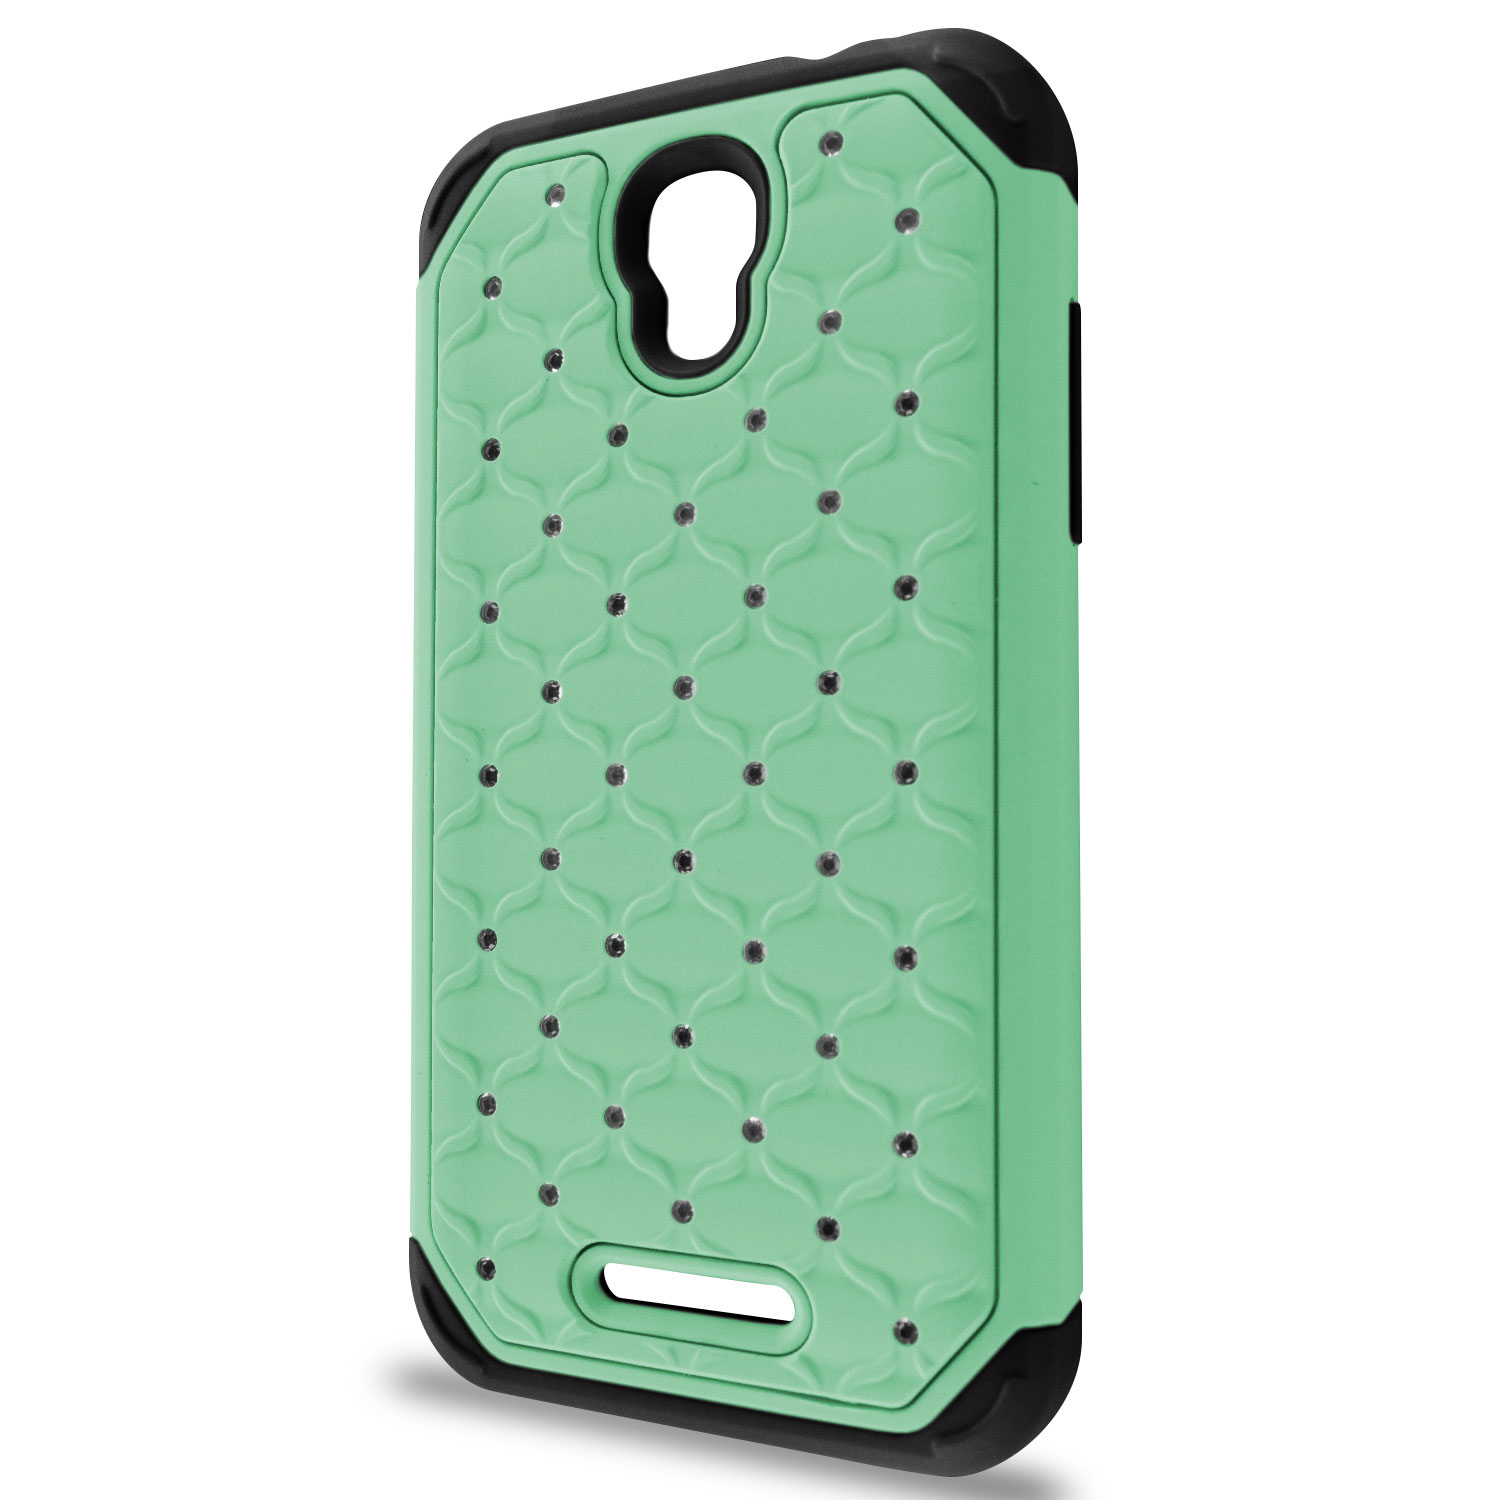 Coveron For Alcatel One Touch Elevate Diamond Bling